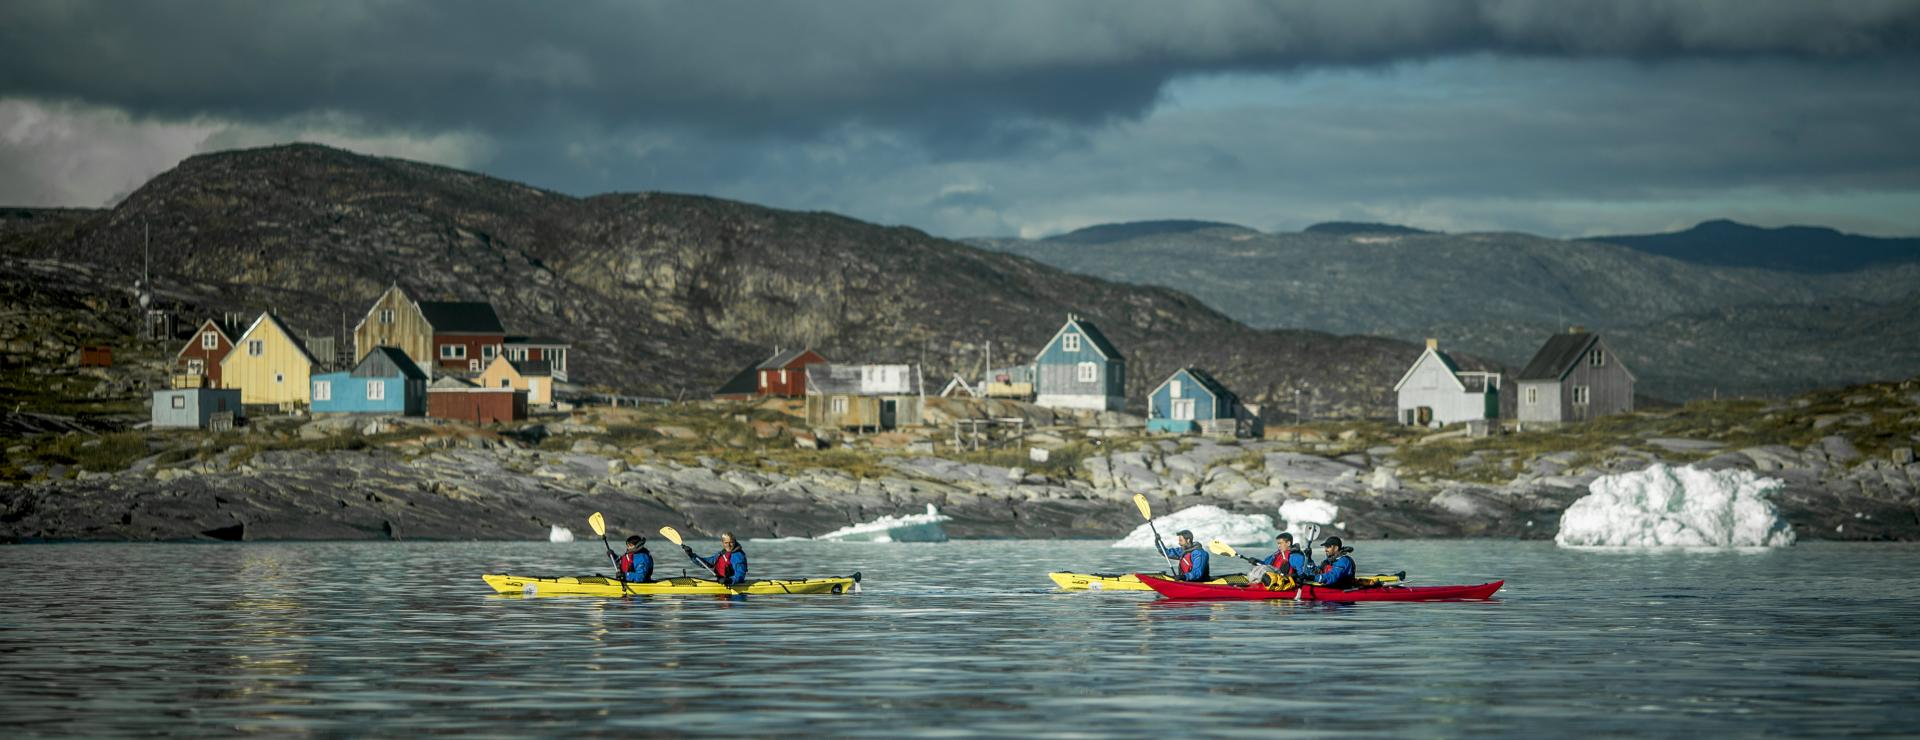 Photo by Visit Greenland